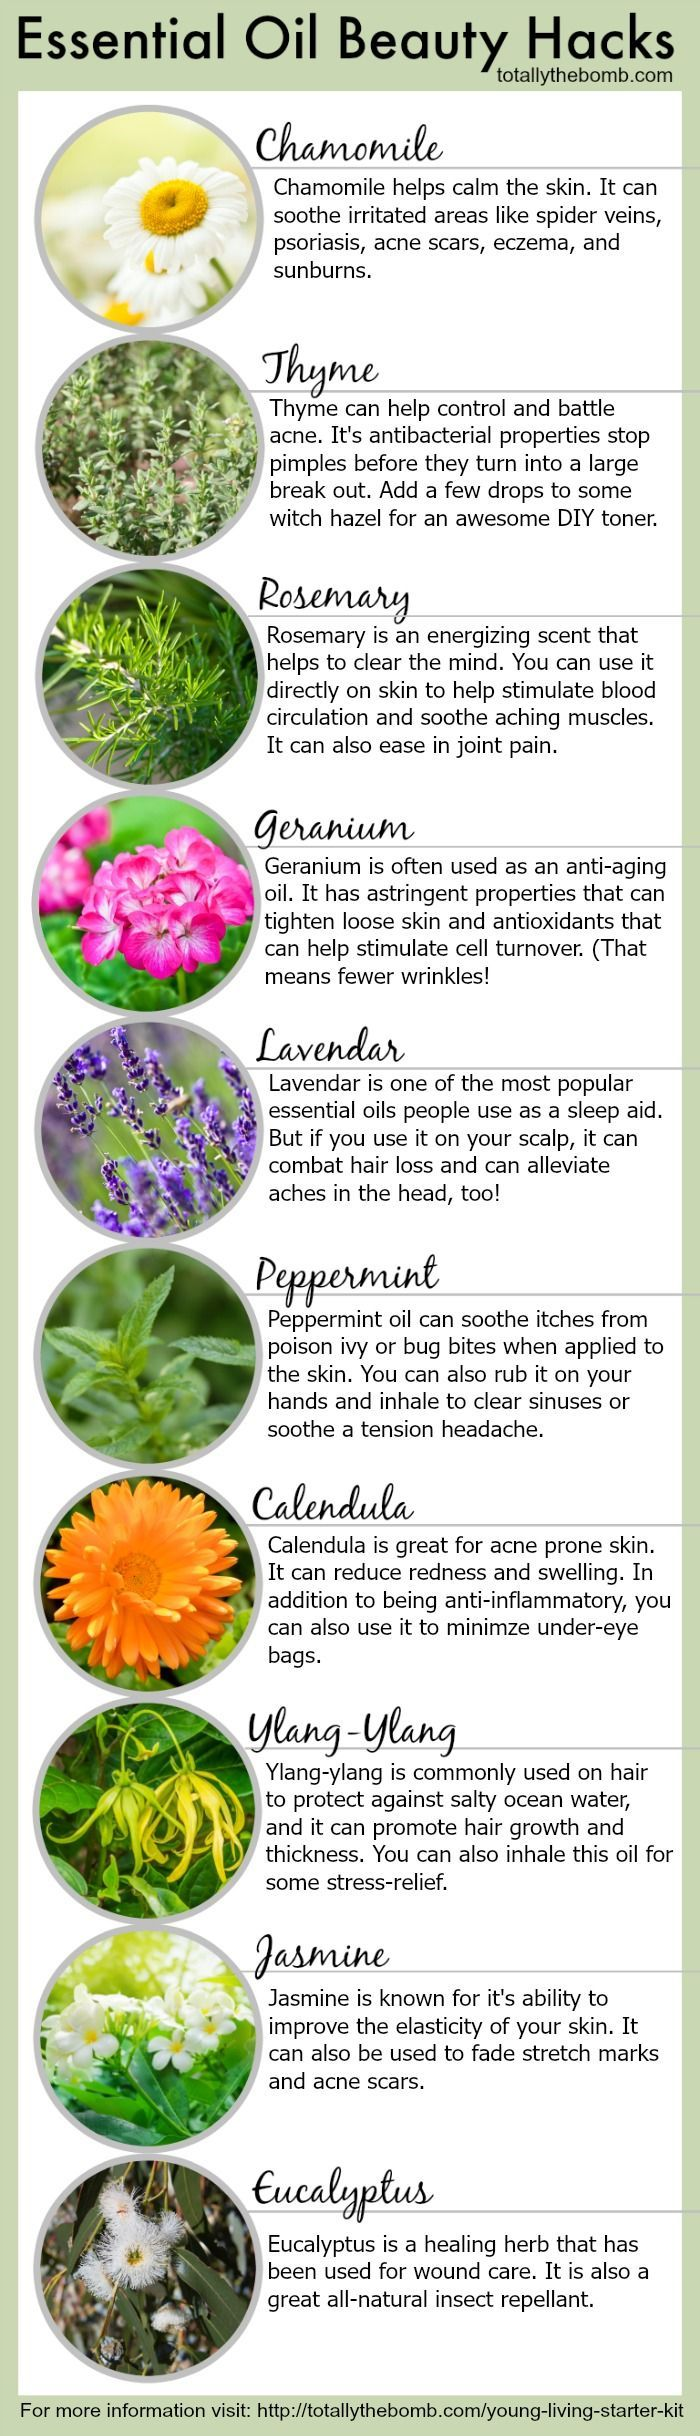 It took a little while for me to figure out which oil does what, so that's why I put together this list of essential oil beauty hacks.: